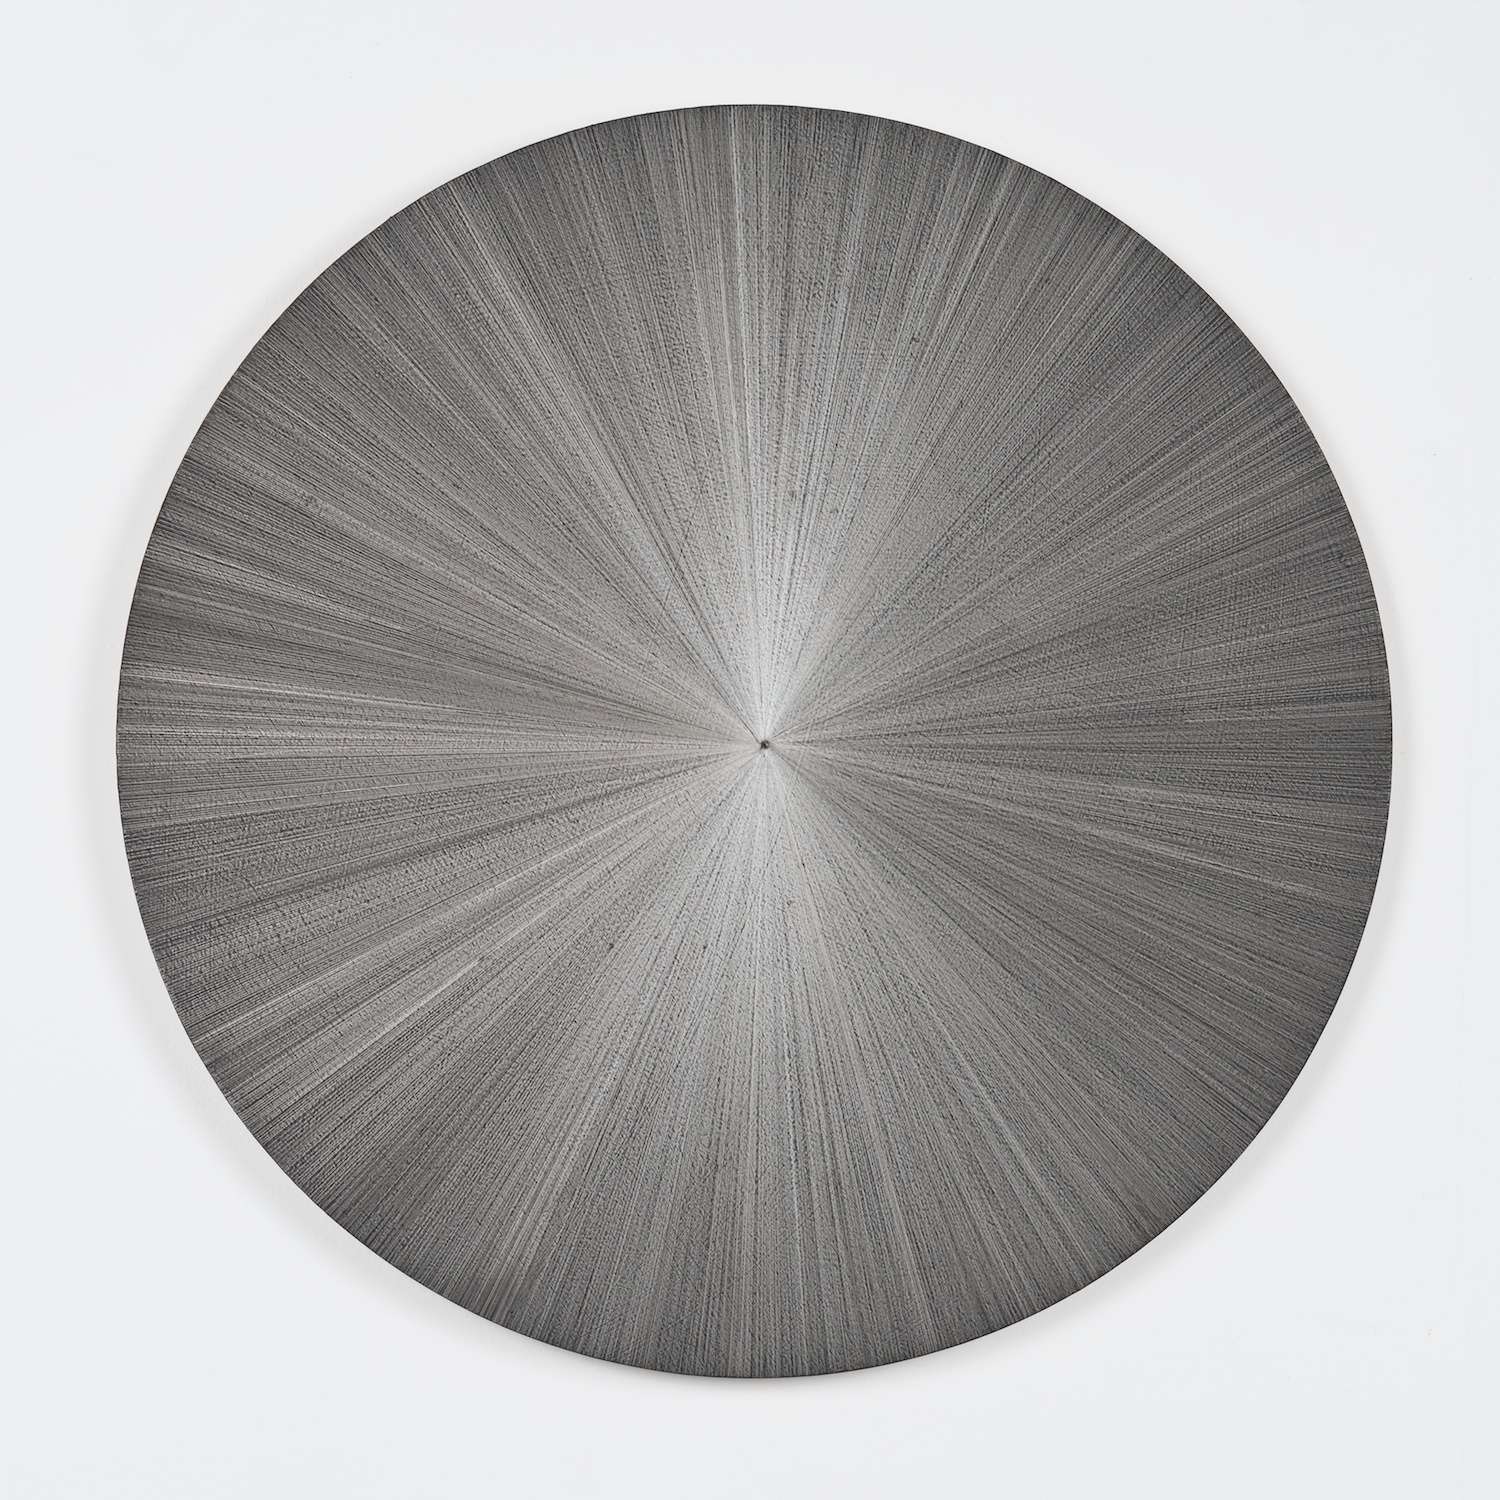 """SIGNATURE PIECE  Michelle Grabner   Untitled  ,  2014  Silverpoint on panel  Courtesy of the artist and James Cohan Gallery   50"""" diameter   Retail Value: $21,000   Opening Bid: $12,000"""